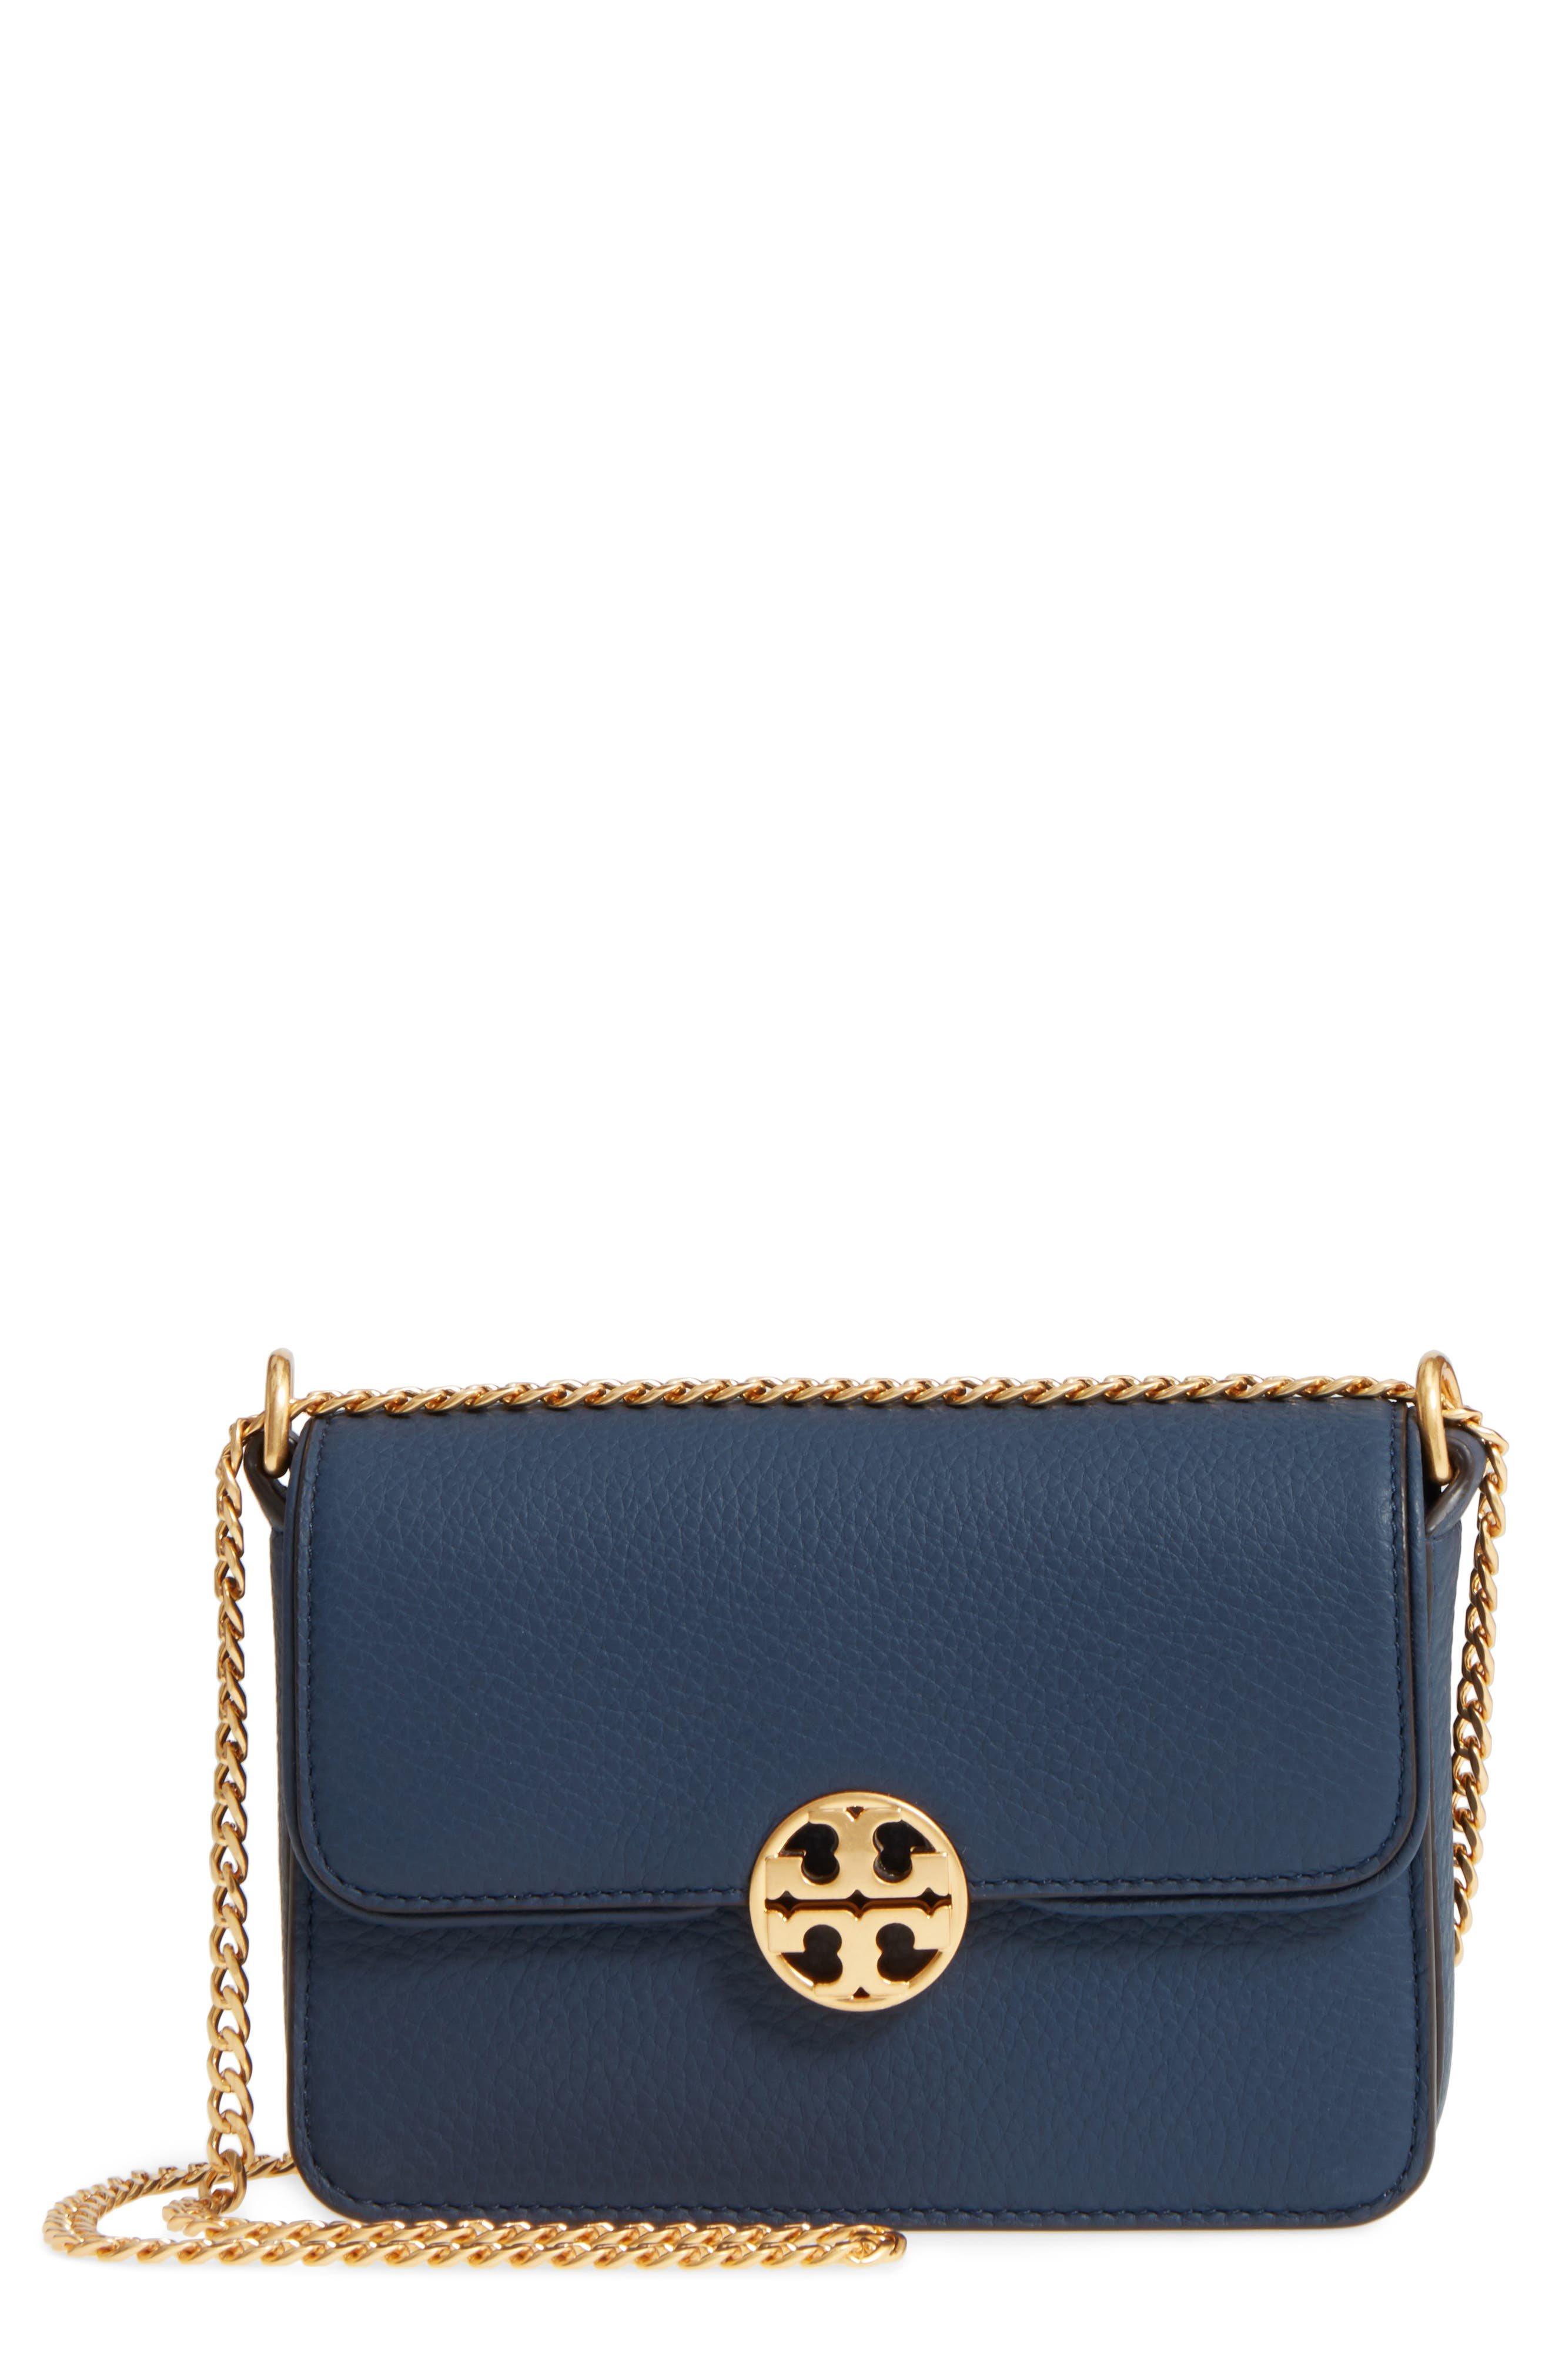 Alternate Image 1 Selected - Tory Burch Mini Chelsea Leather Convertible Crossbody Bag